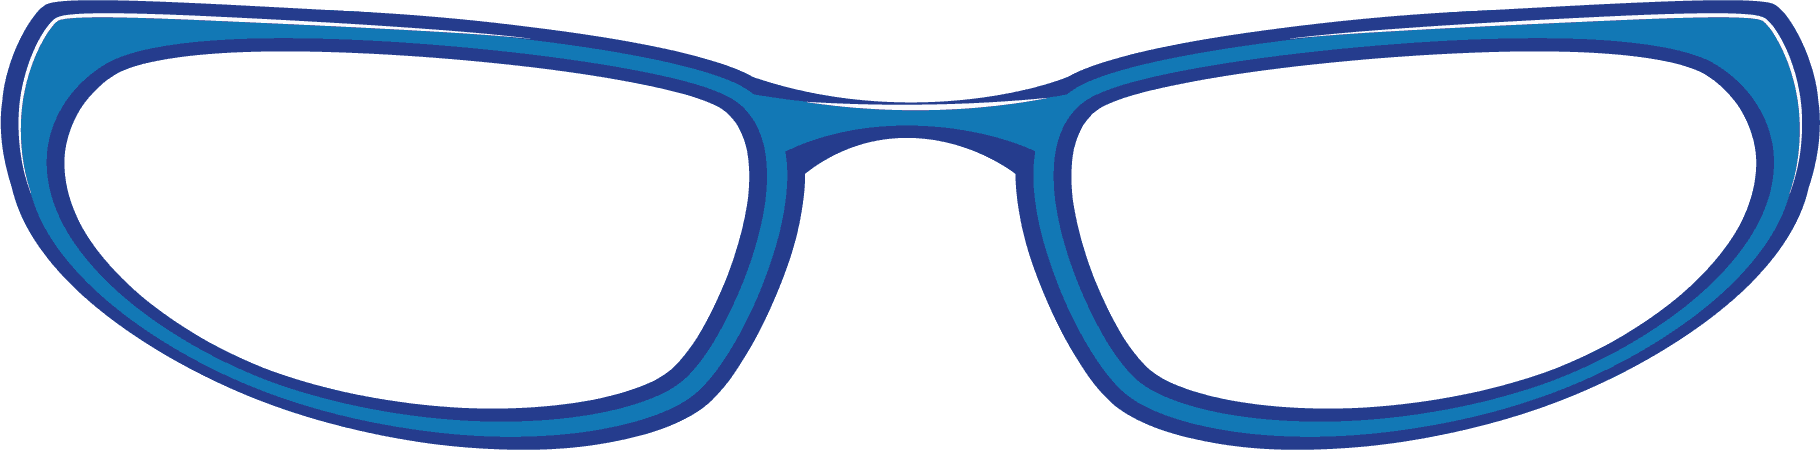 Free Eyeglasses Cliparts, Download Free Clip Art, Free Clip.